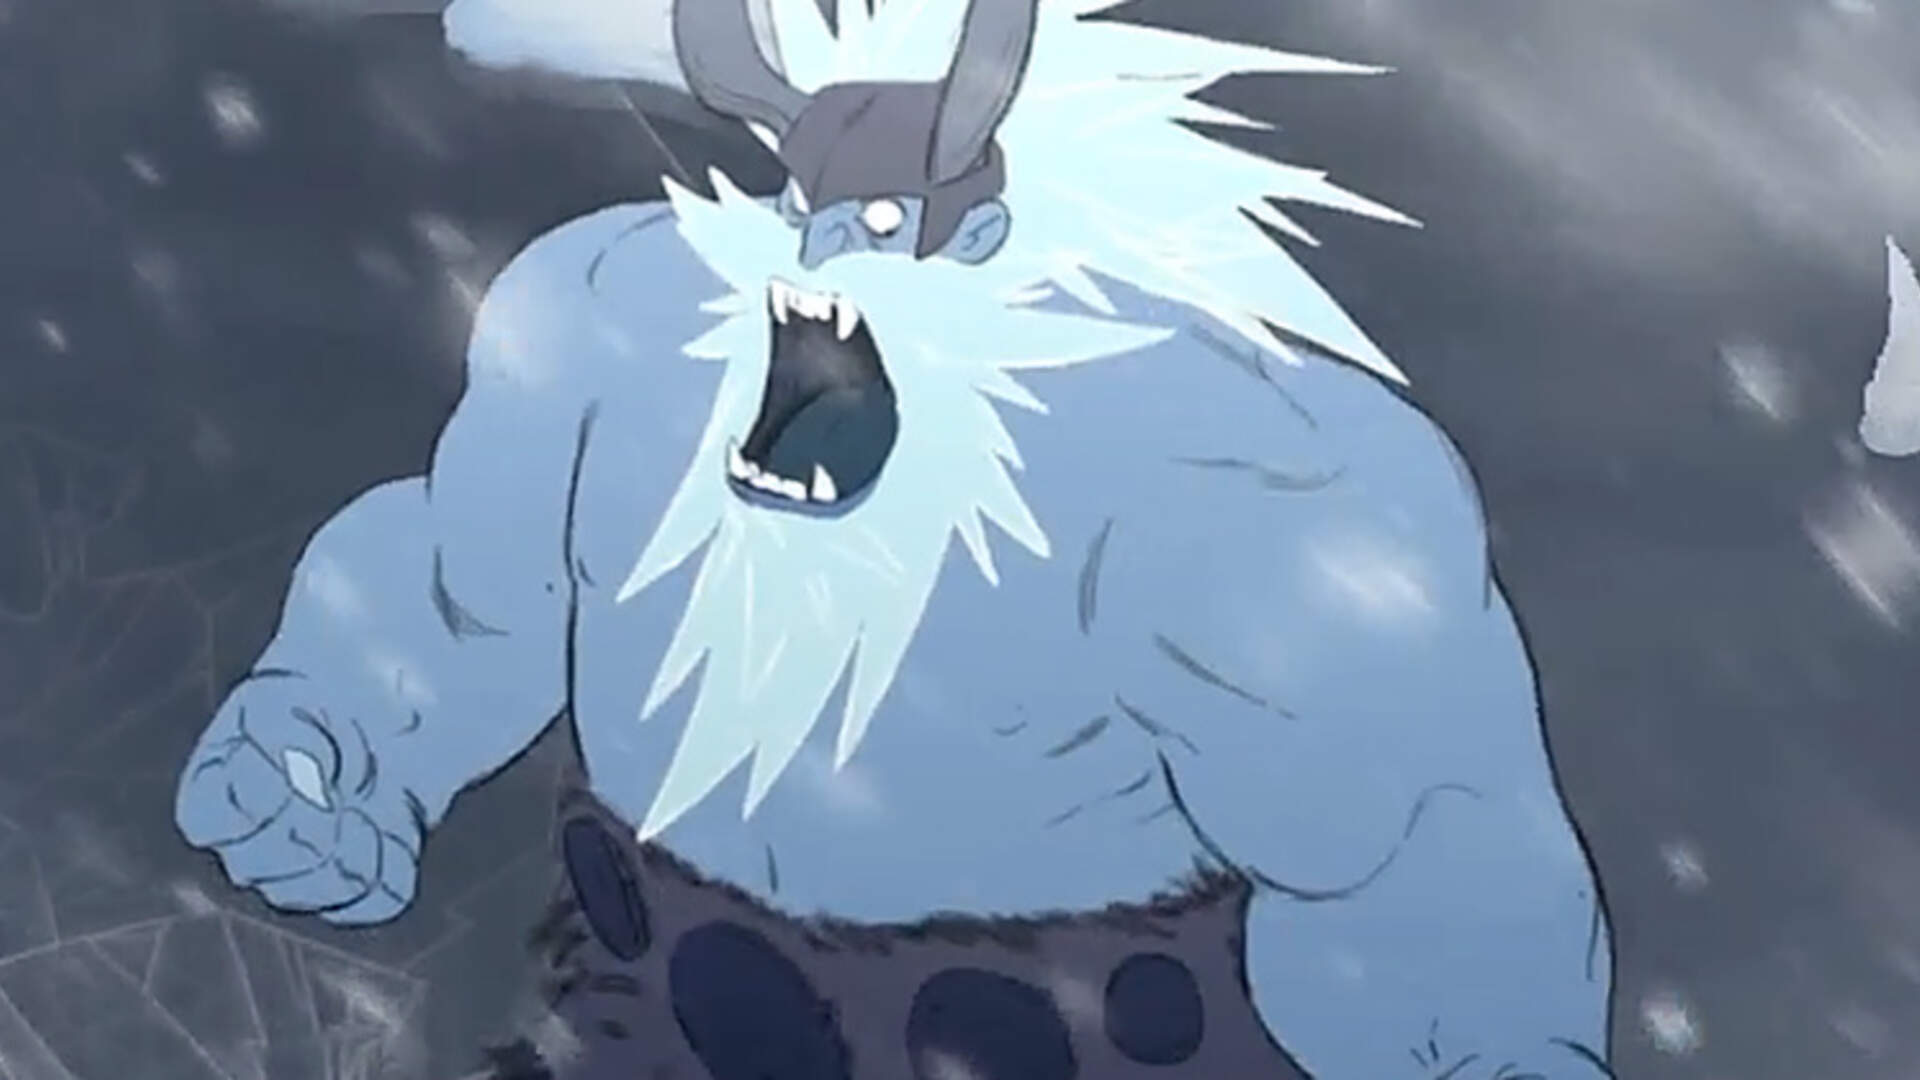 Jotun Pits You Against Gods in Hand-Drawn Hackery